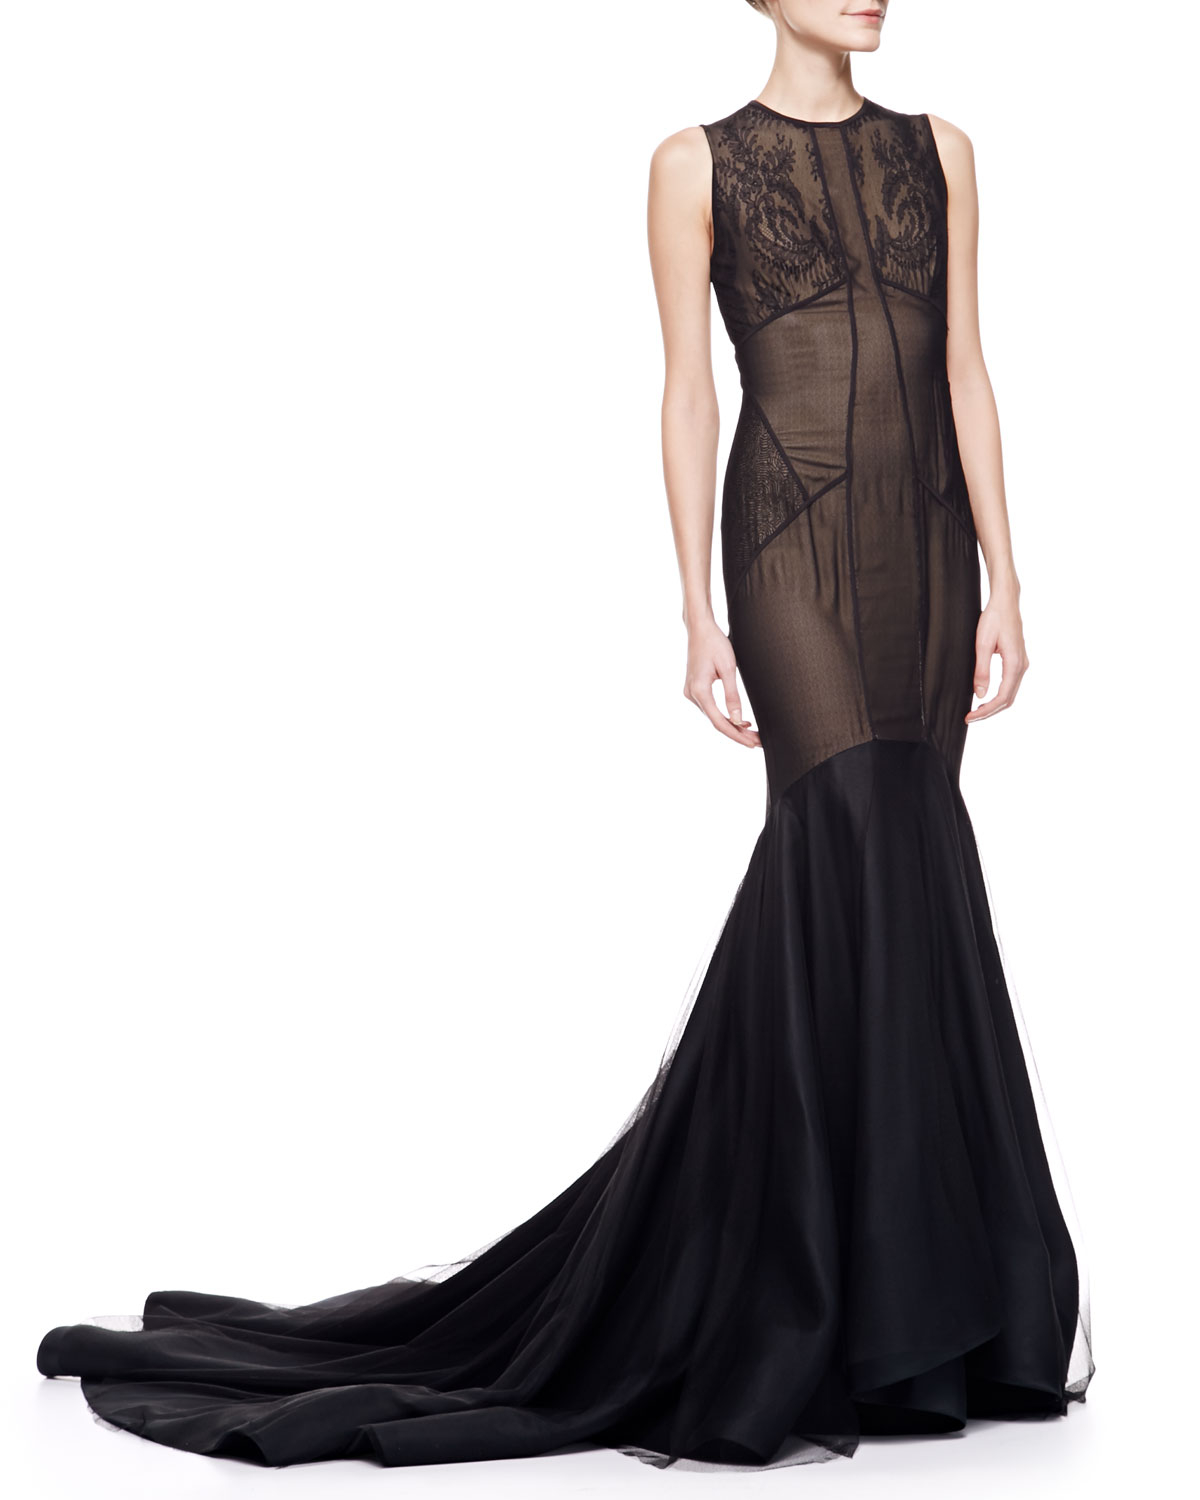 ea579c586 Jason Wu Lace Tulle Trumpet Gown with Train in Black - Lyst